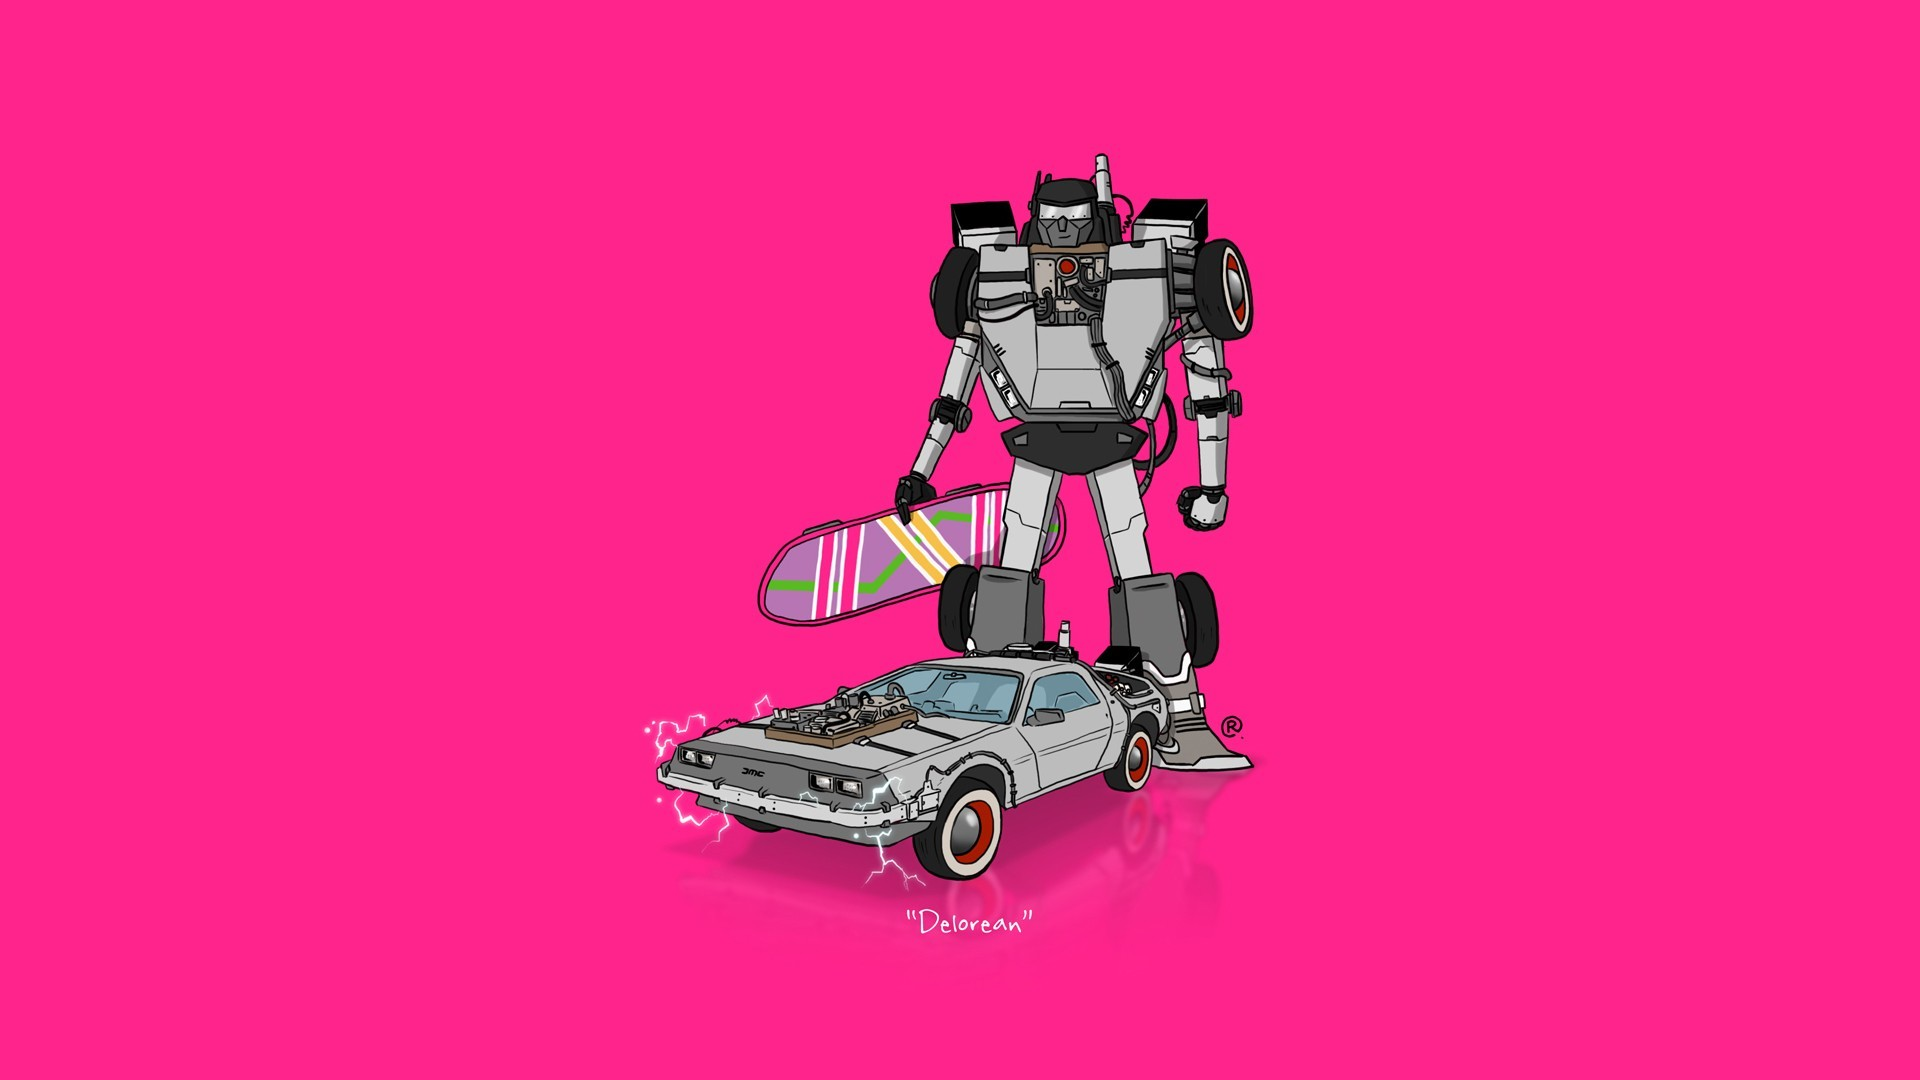 1920x1080 car, Transformers, Minimalism, DeLorean, Back To The Future Wallpapers HD /  Desktop and Mobile Backgrounds